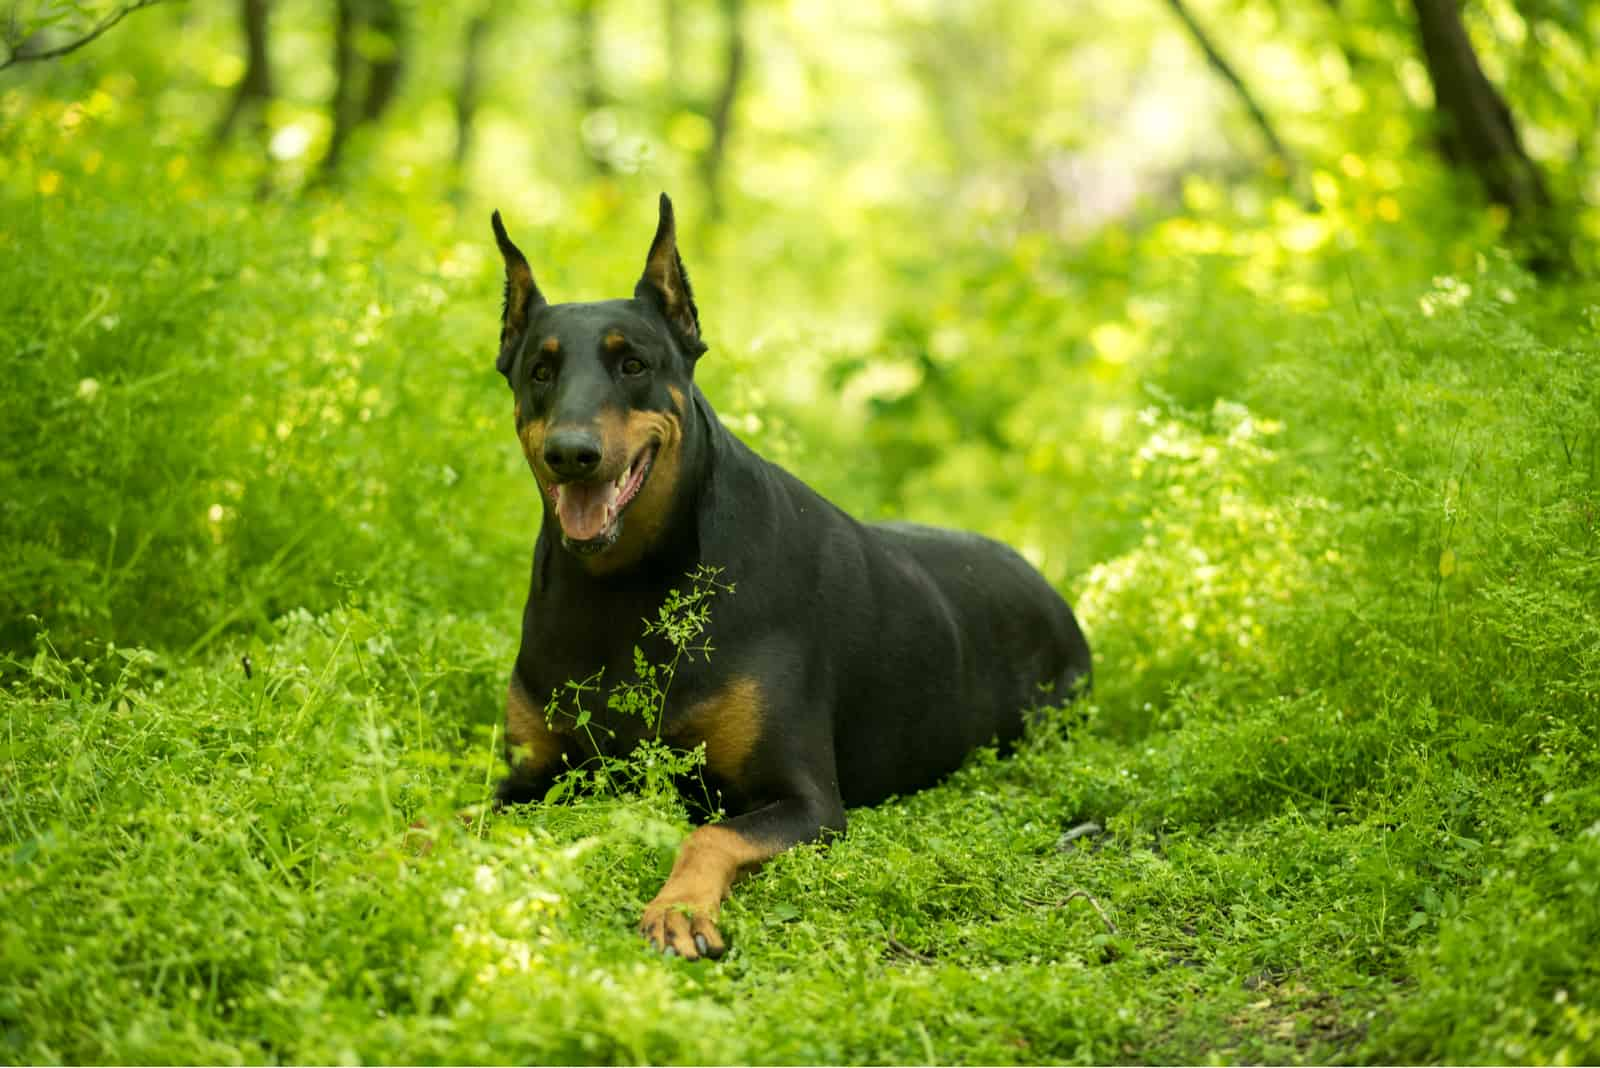 Doberman lies on the grass in the forest